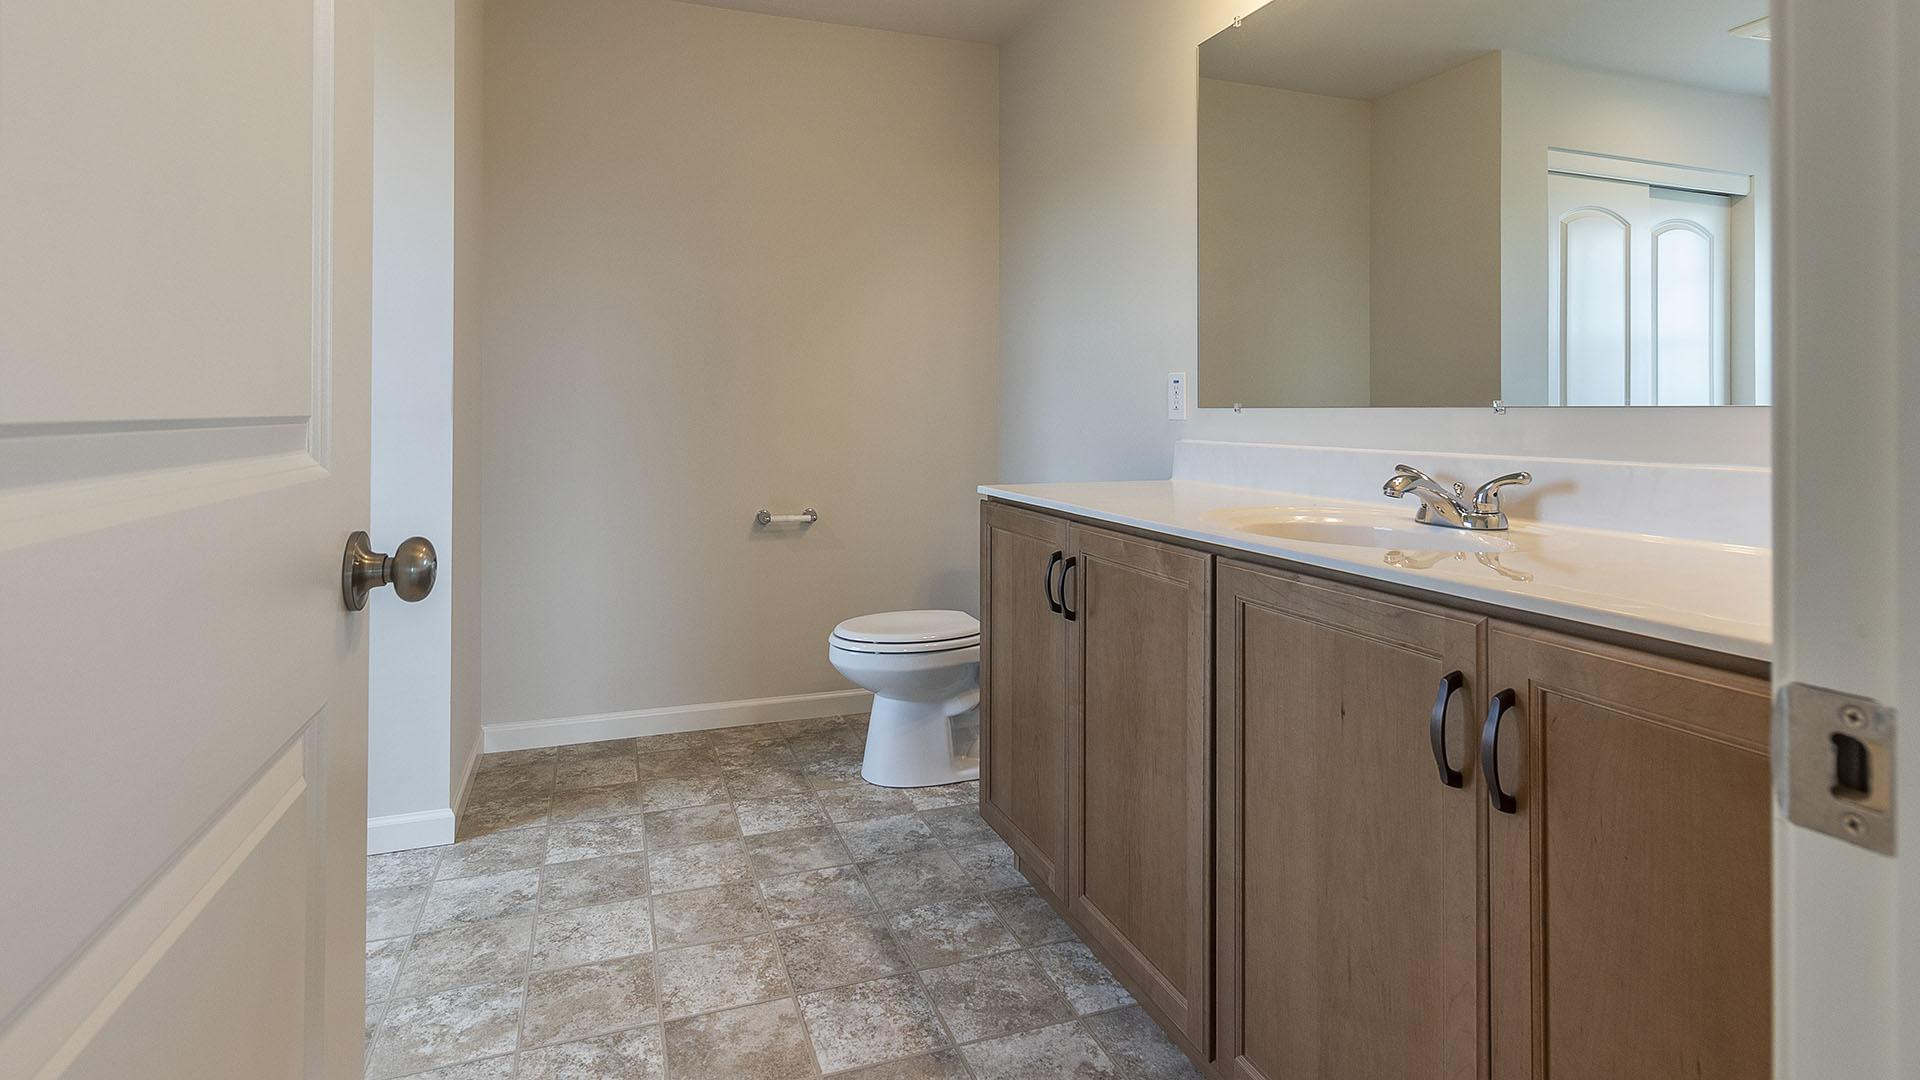 Bathroom featured in the Redwood By S & A Homes in Altoona, PA